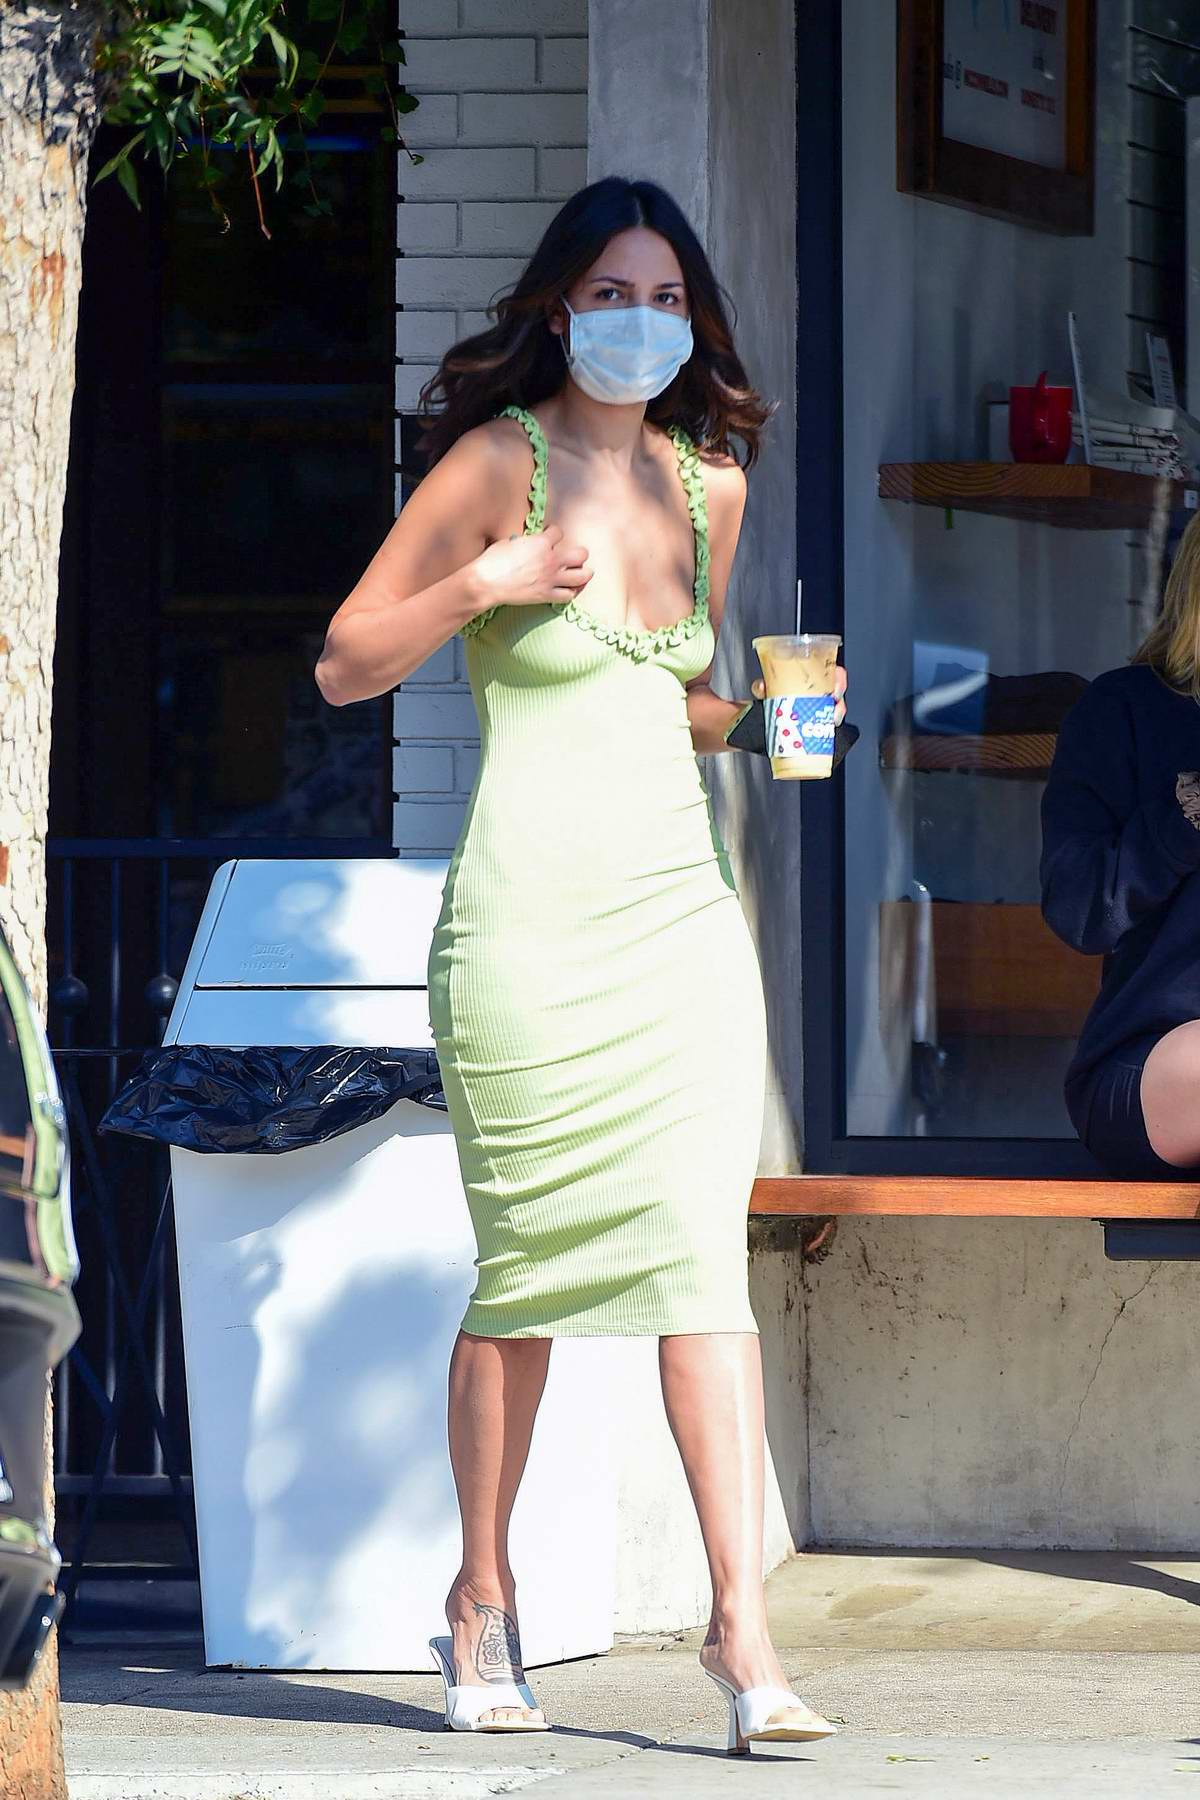 Eiza Gonzalez looks gorgeous in a form-fitting green dress while making a coffee run in West Hollywood, California